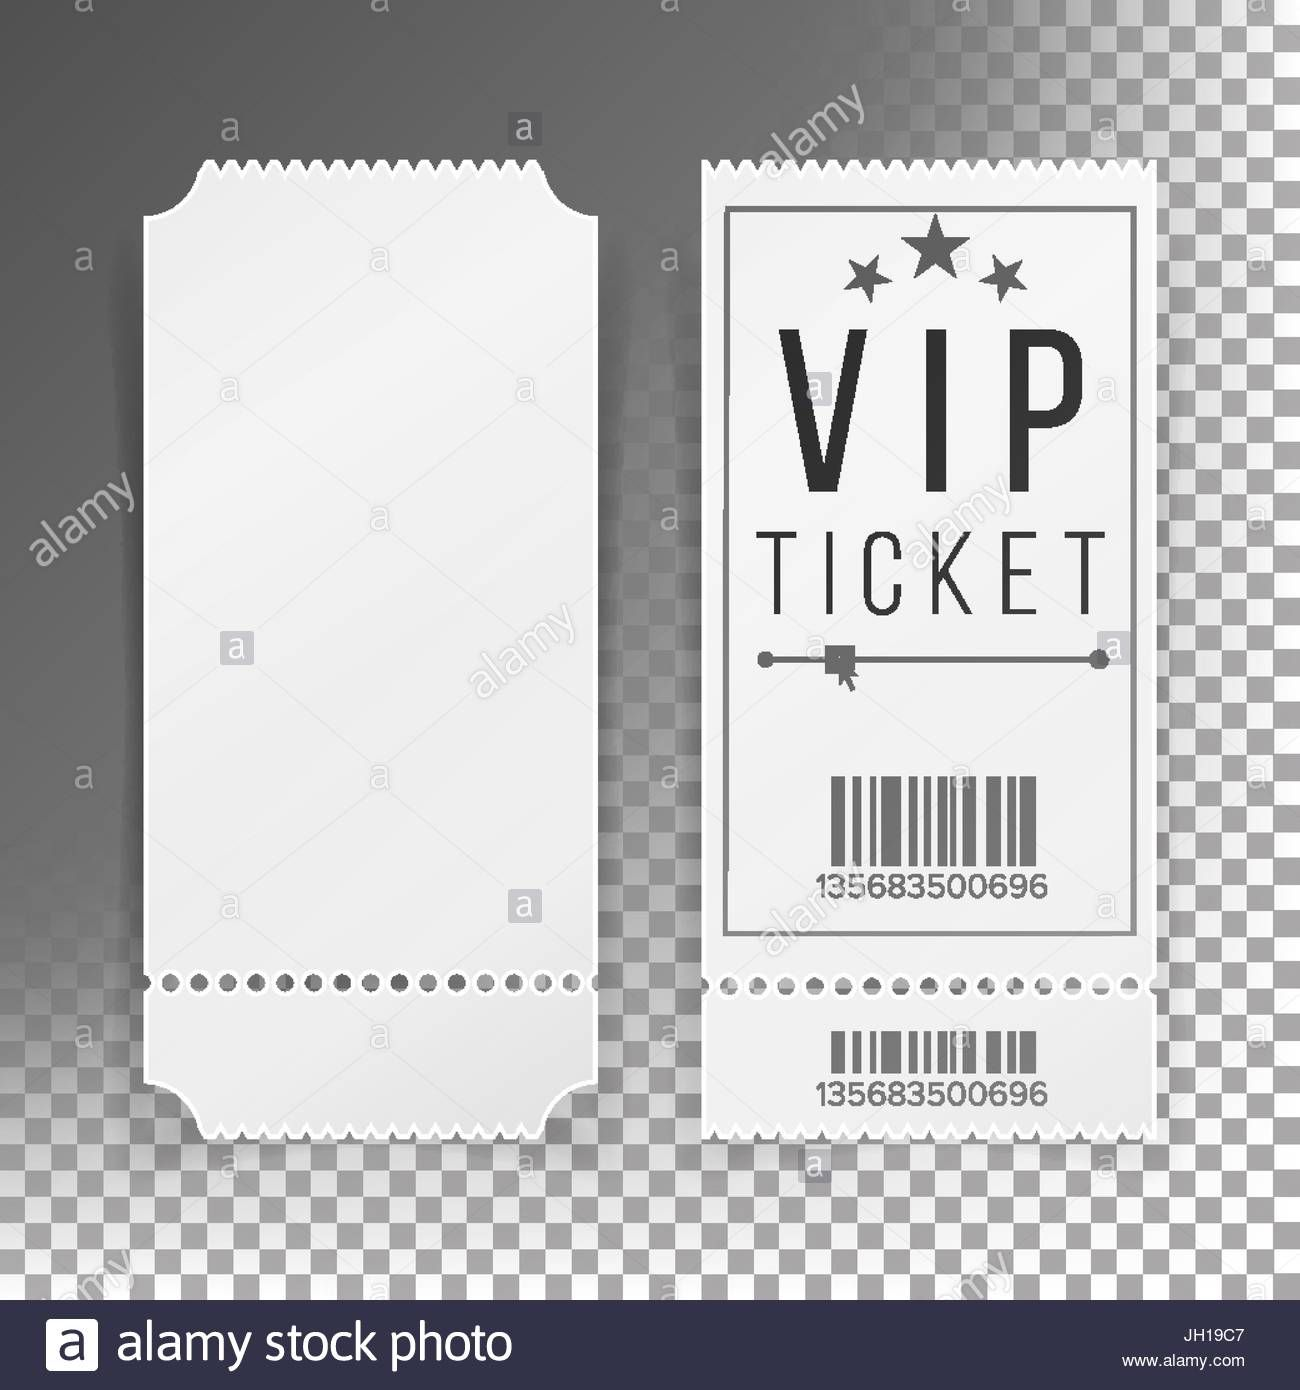 The appealing Ticket Template Set Vector. Blank Theater